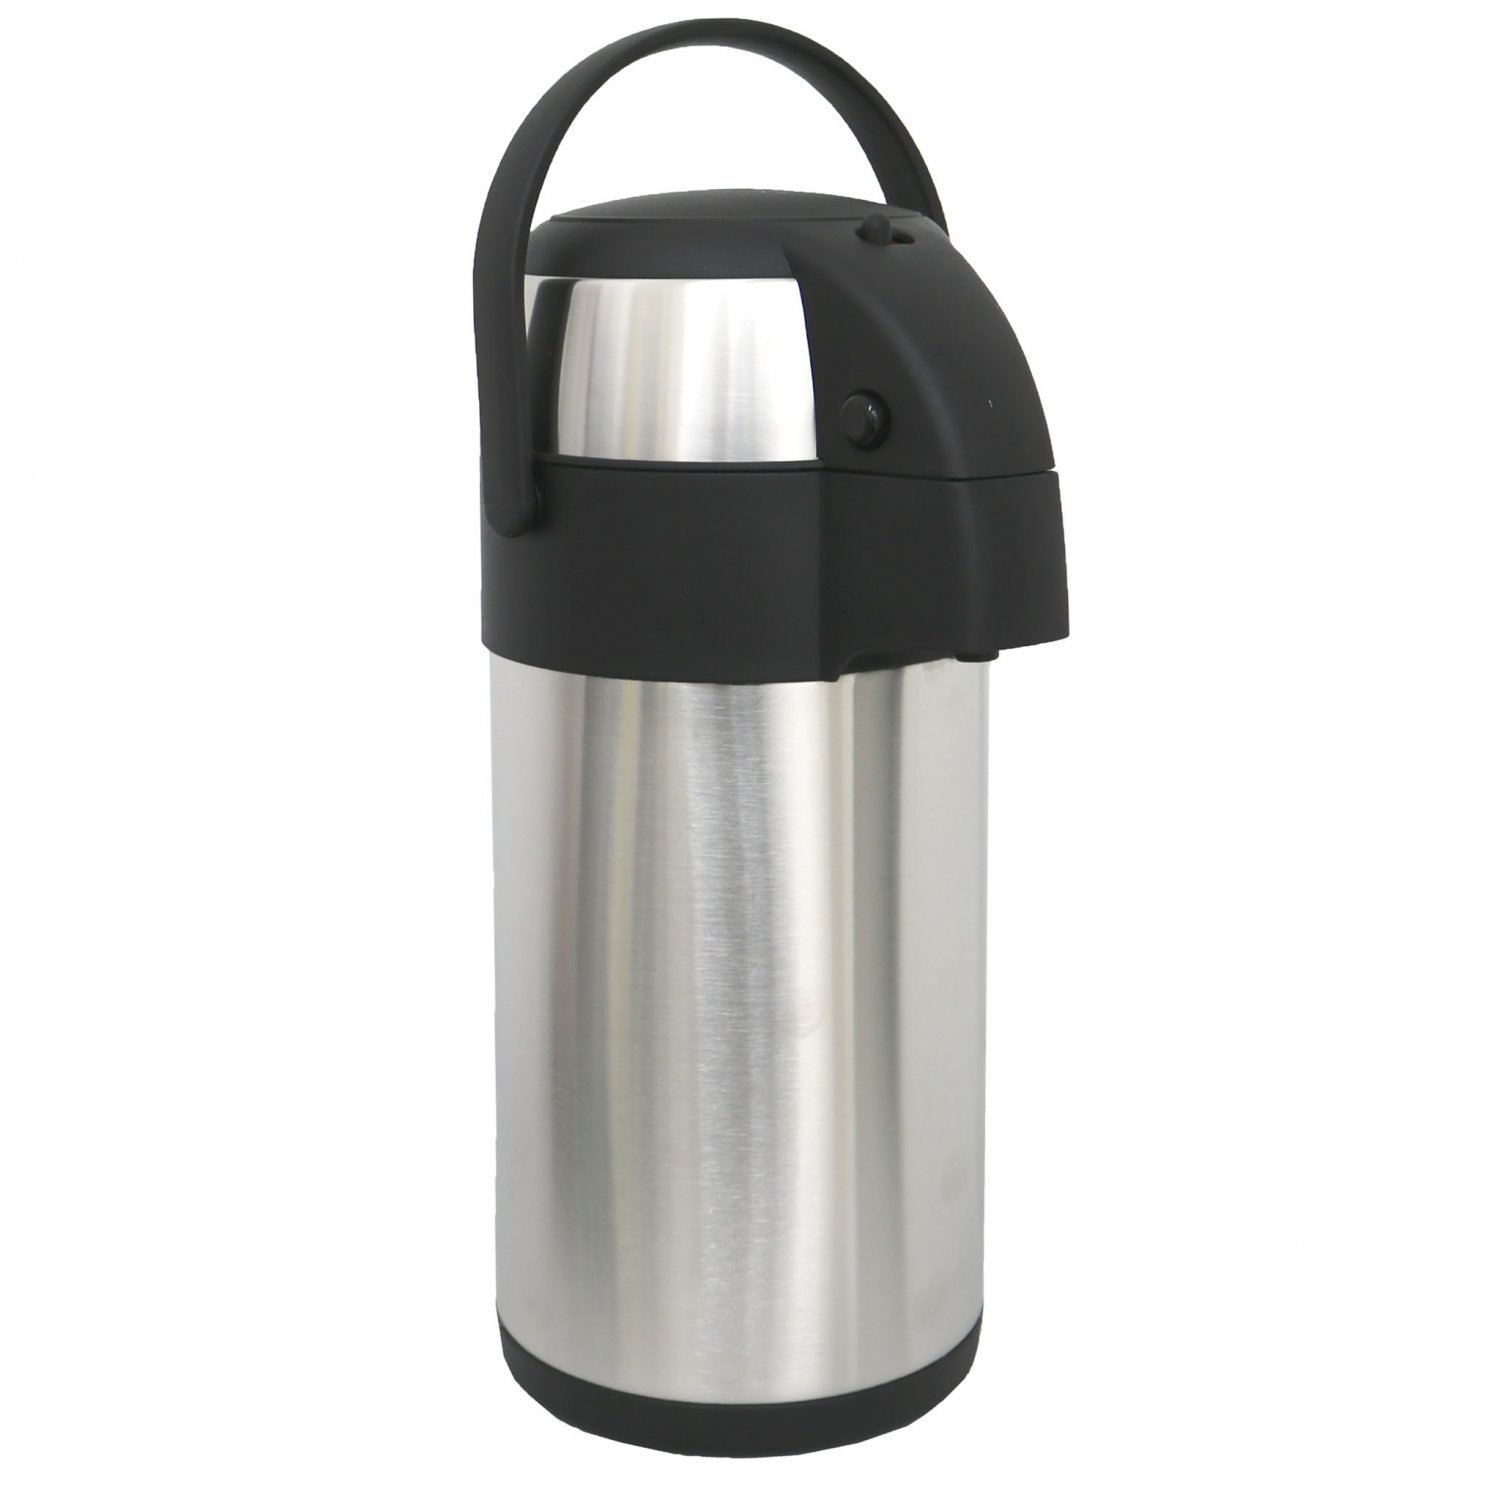 3L Stainless Steel Airpot Insulated Vacuum Thermal Flask Jug